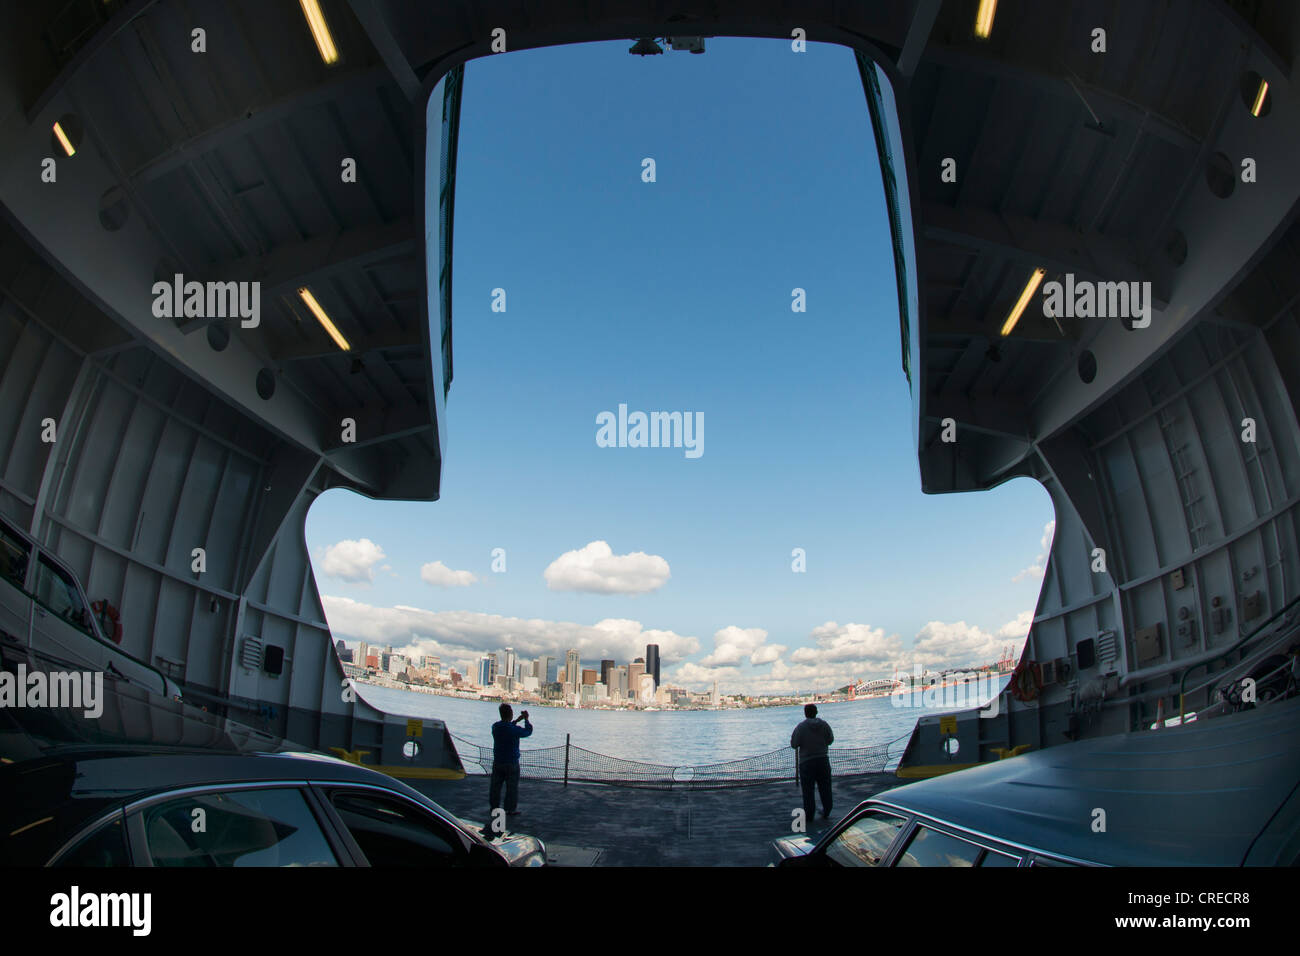 Downtown Seattle from Car Deck of Washington State Ferry - Stock Image